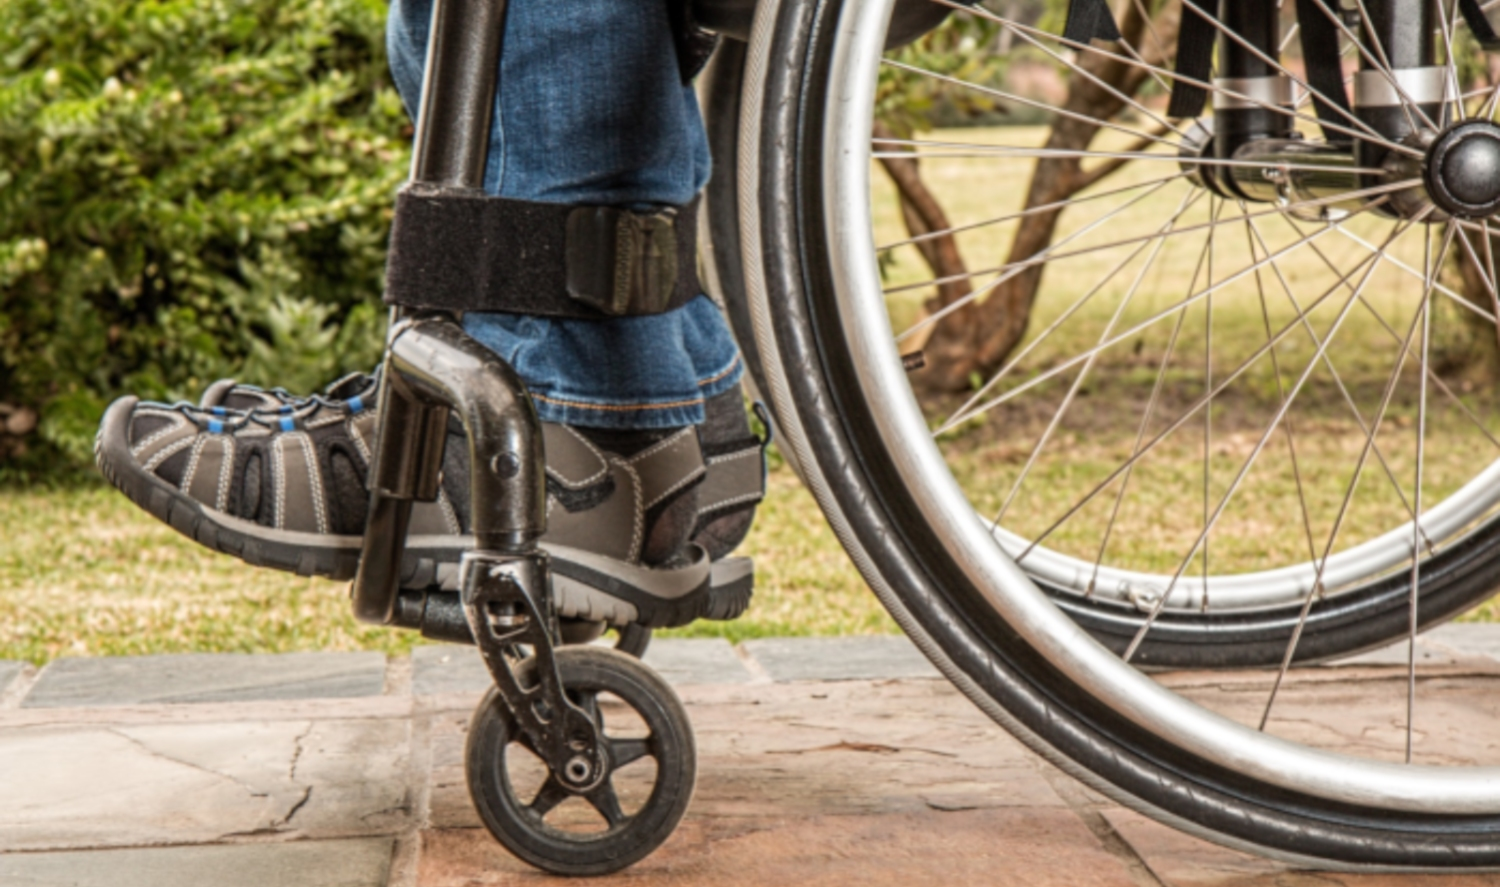 People with disabilities experience housing discrimination and few housing units in the U.S. are accessible.